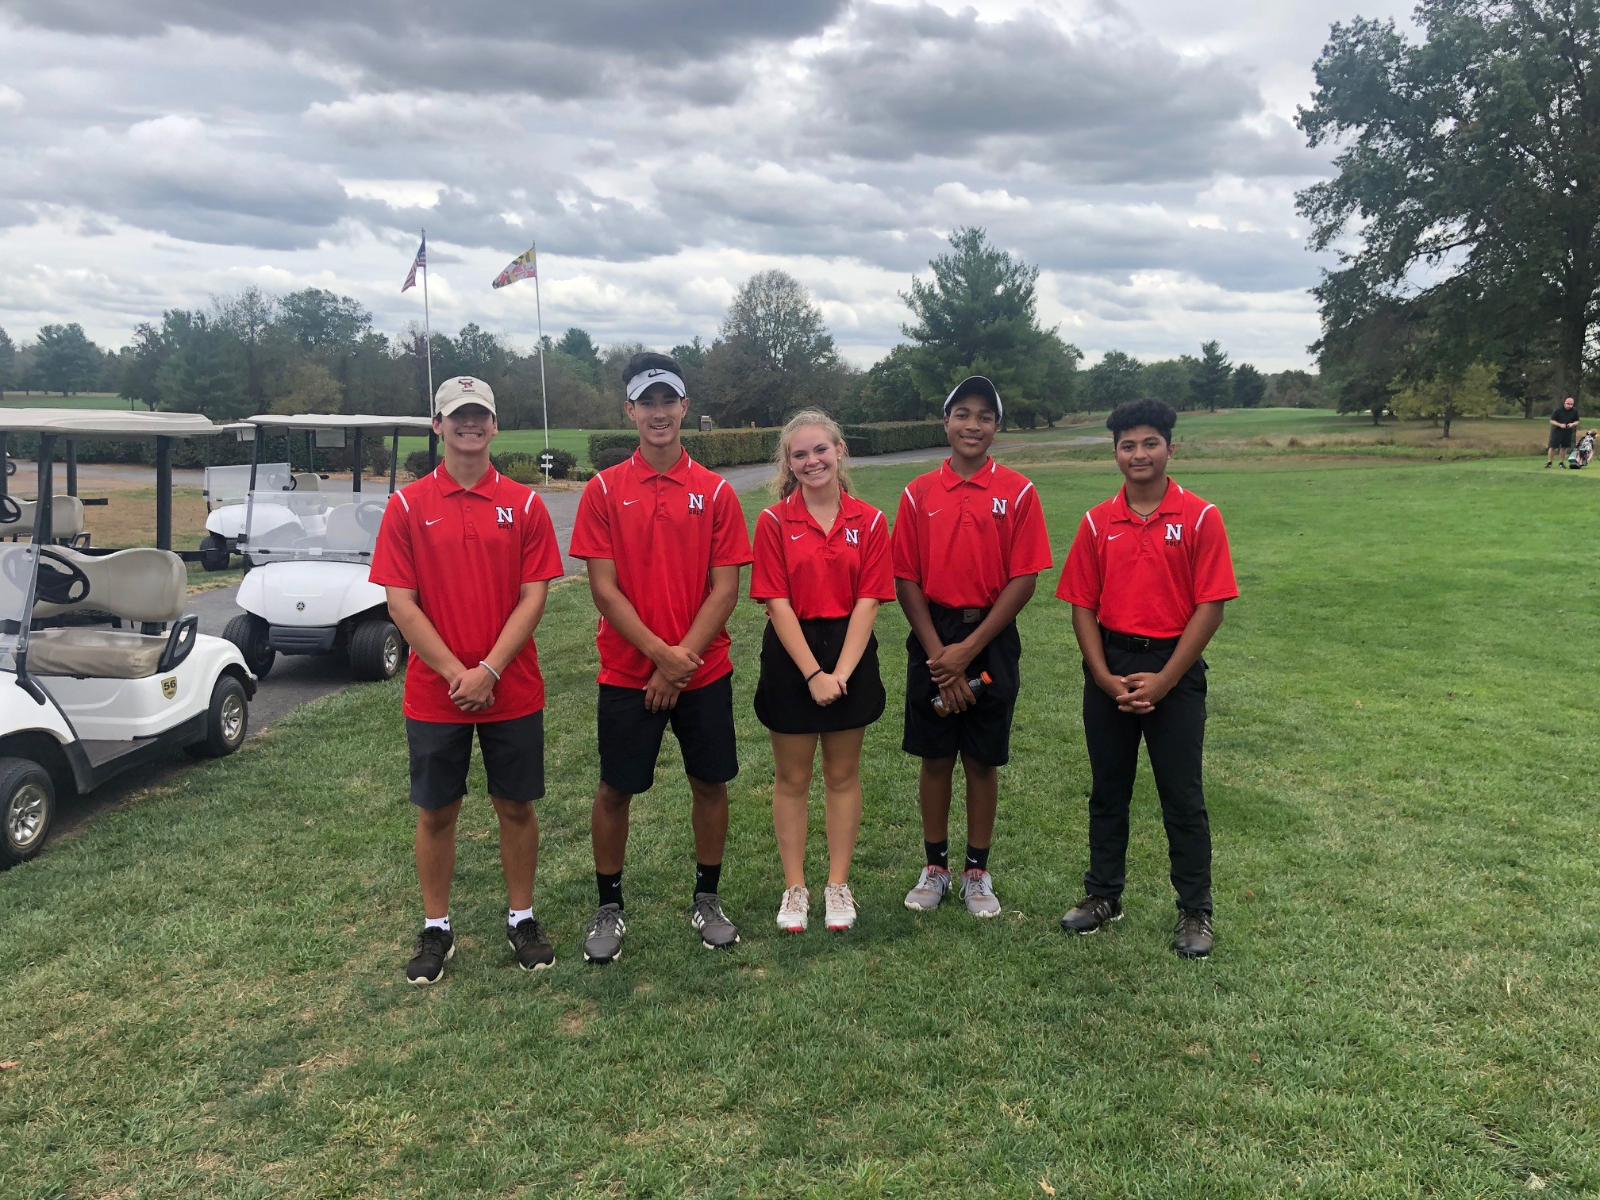 Golf Team finishes season with school record